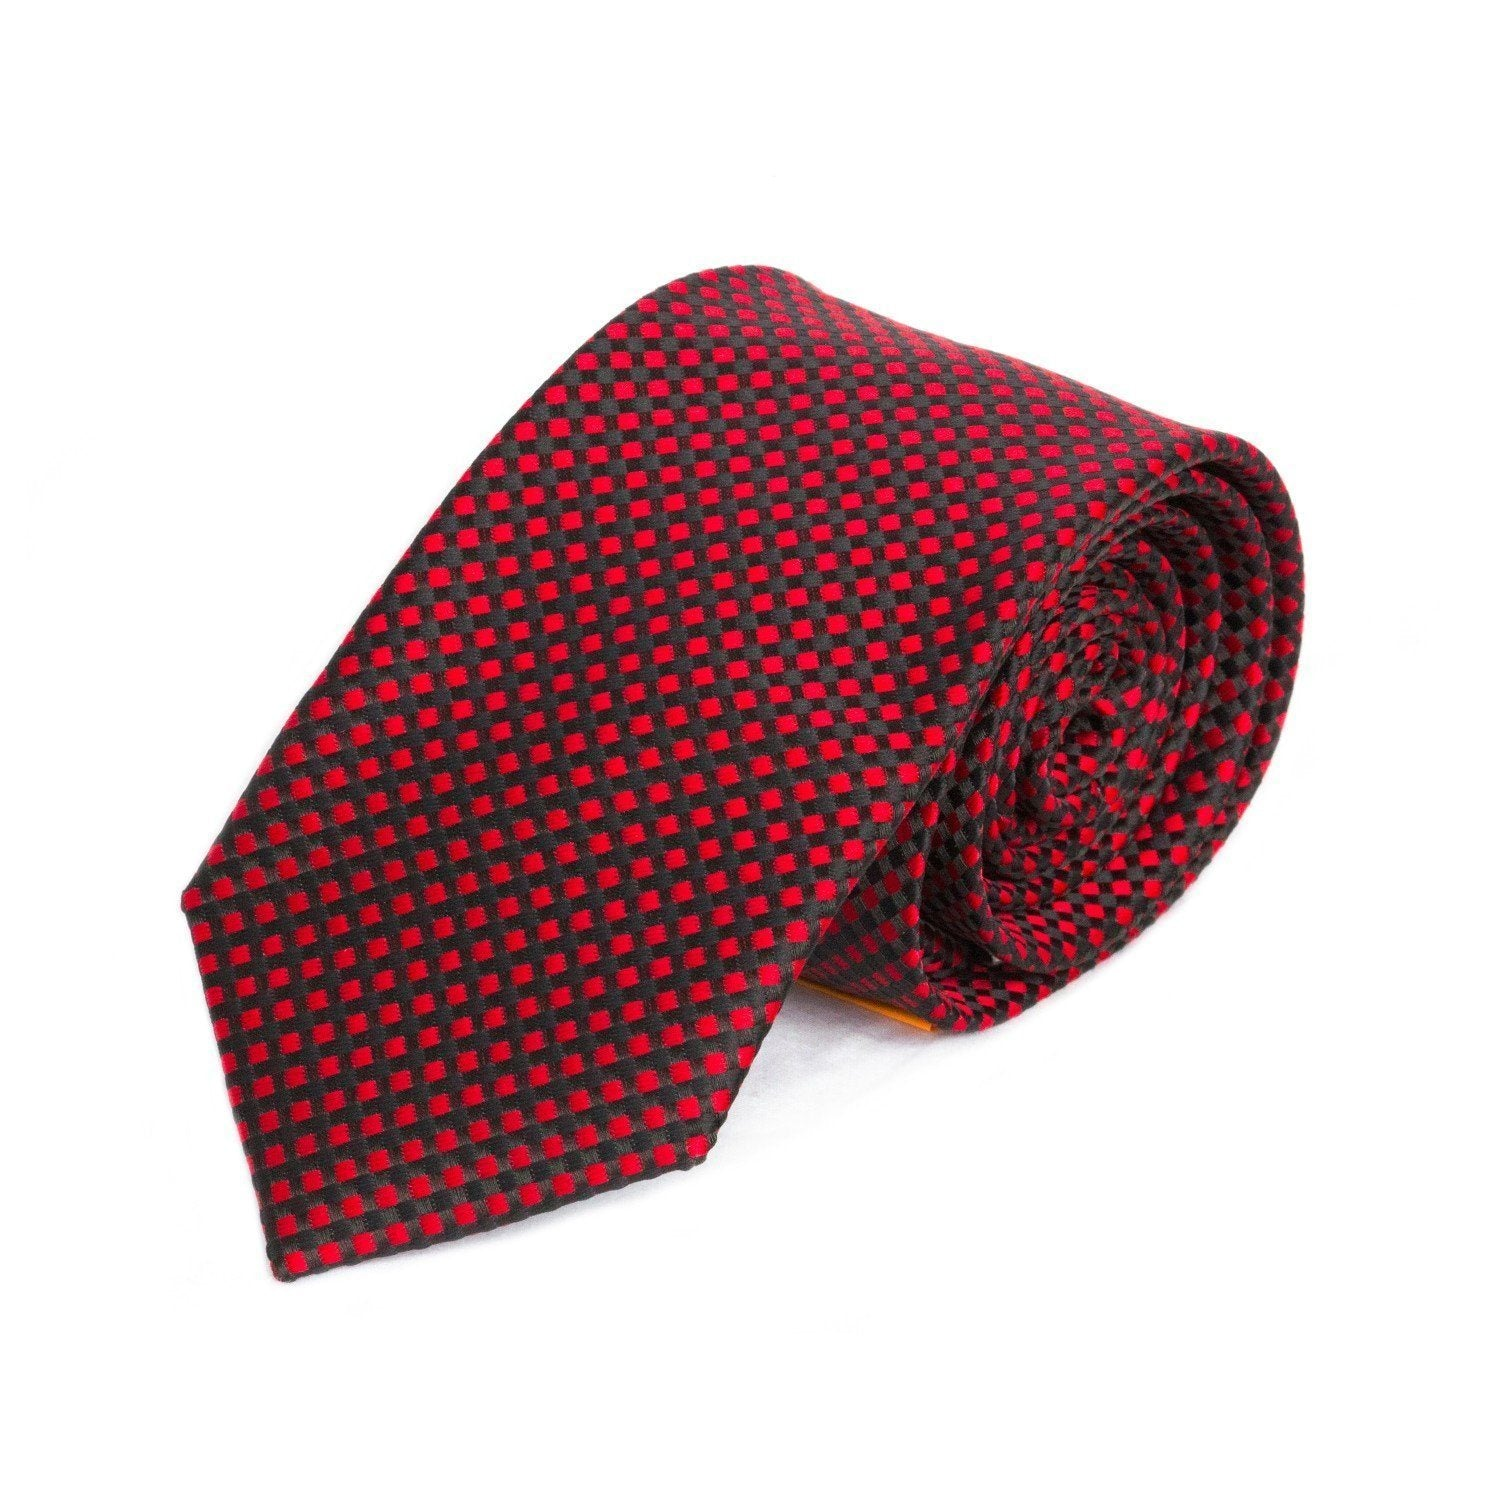 Red and Black Weave MF Tie Ties Cuffed.com.au